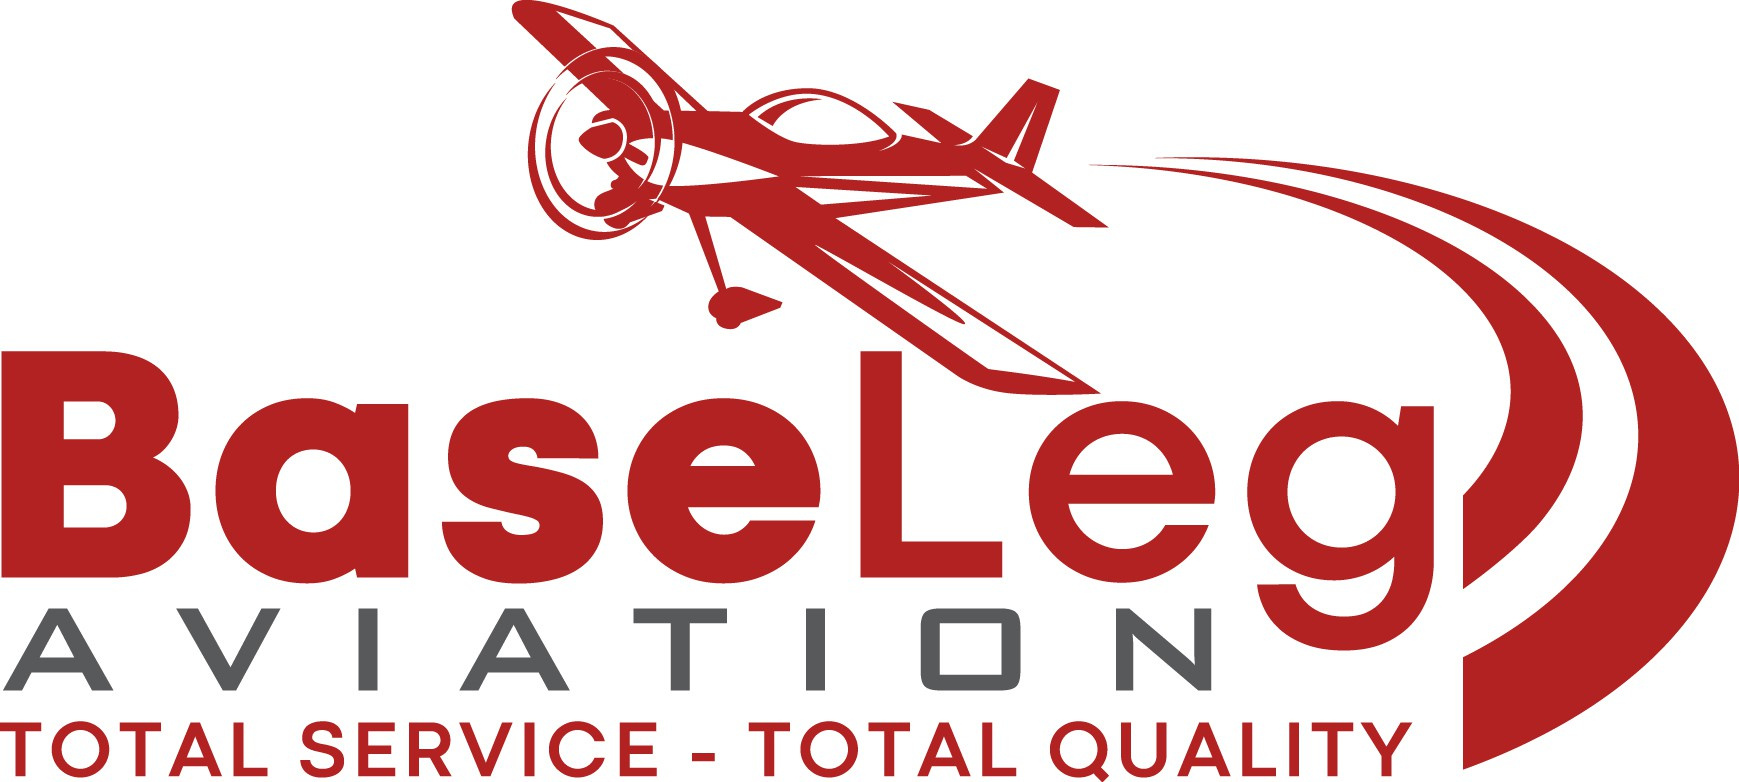 design a log for the premier amateur-built aviation service provider in the country. Let's try some designs without BLA.